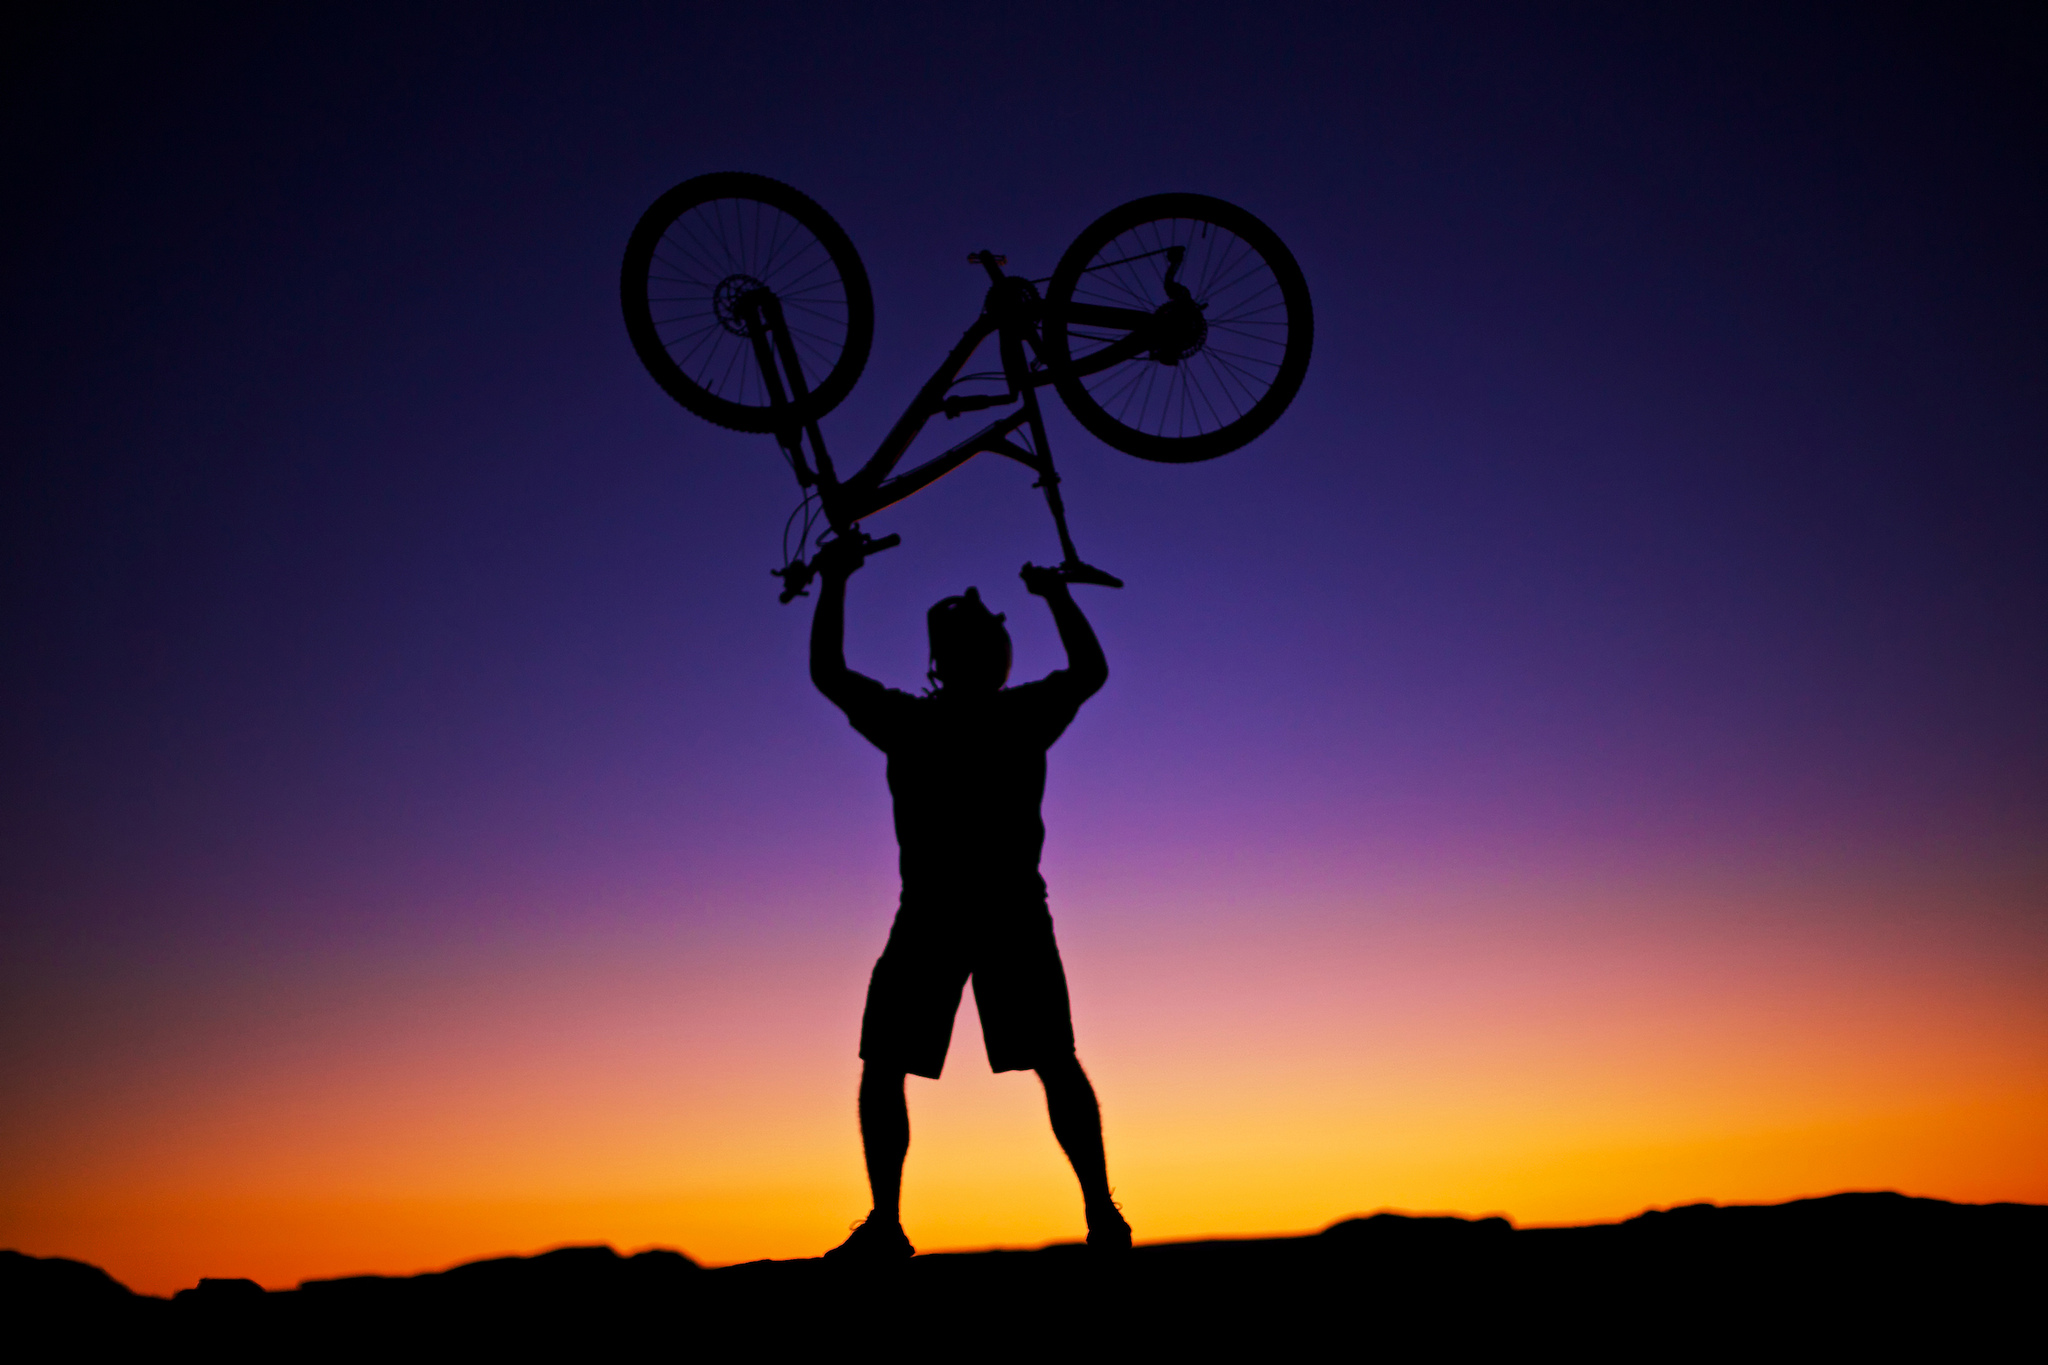 mountain biking, law